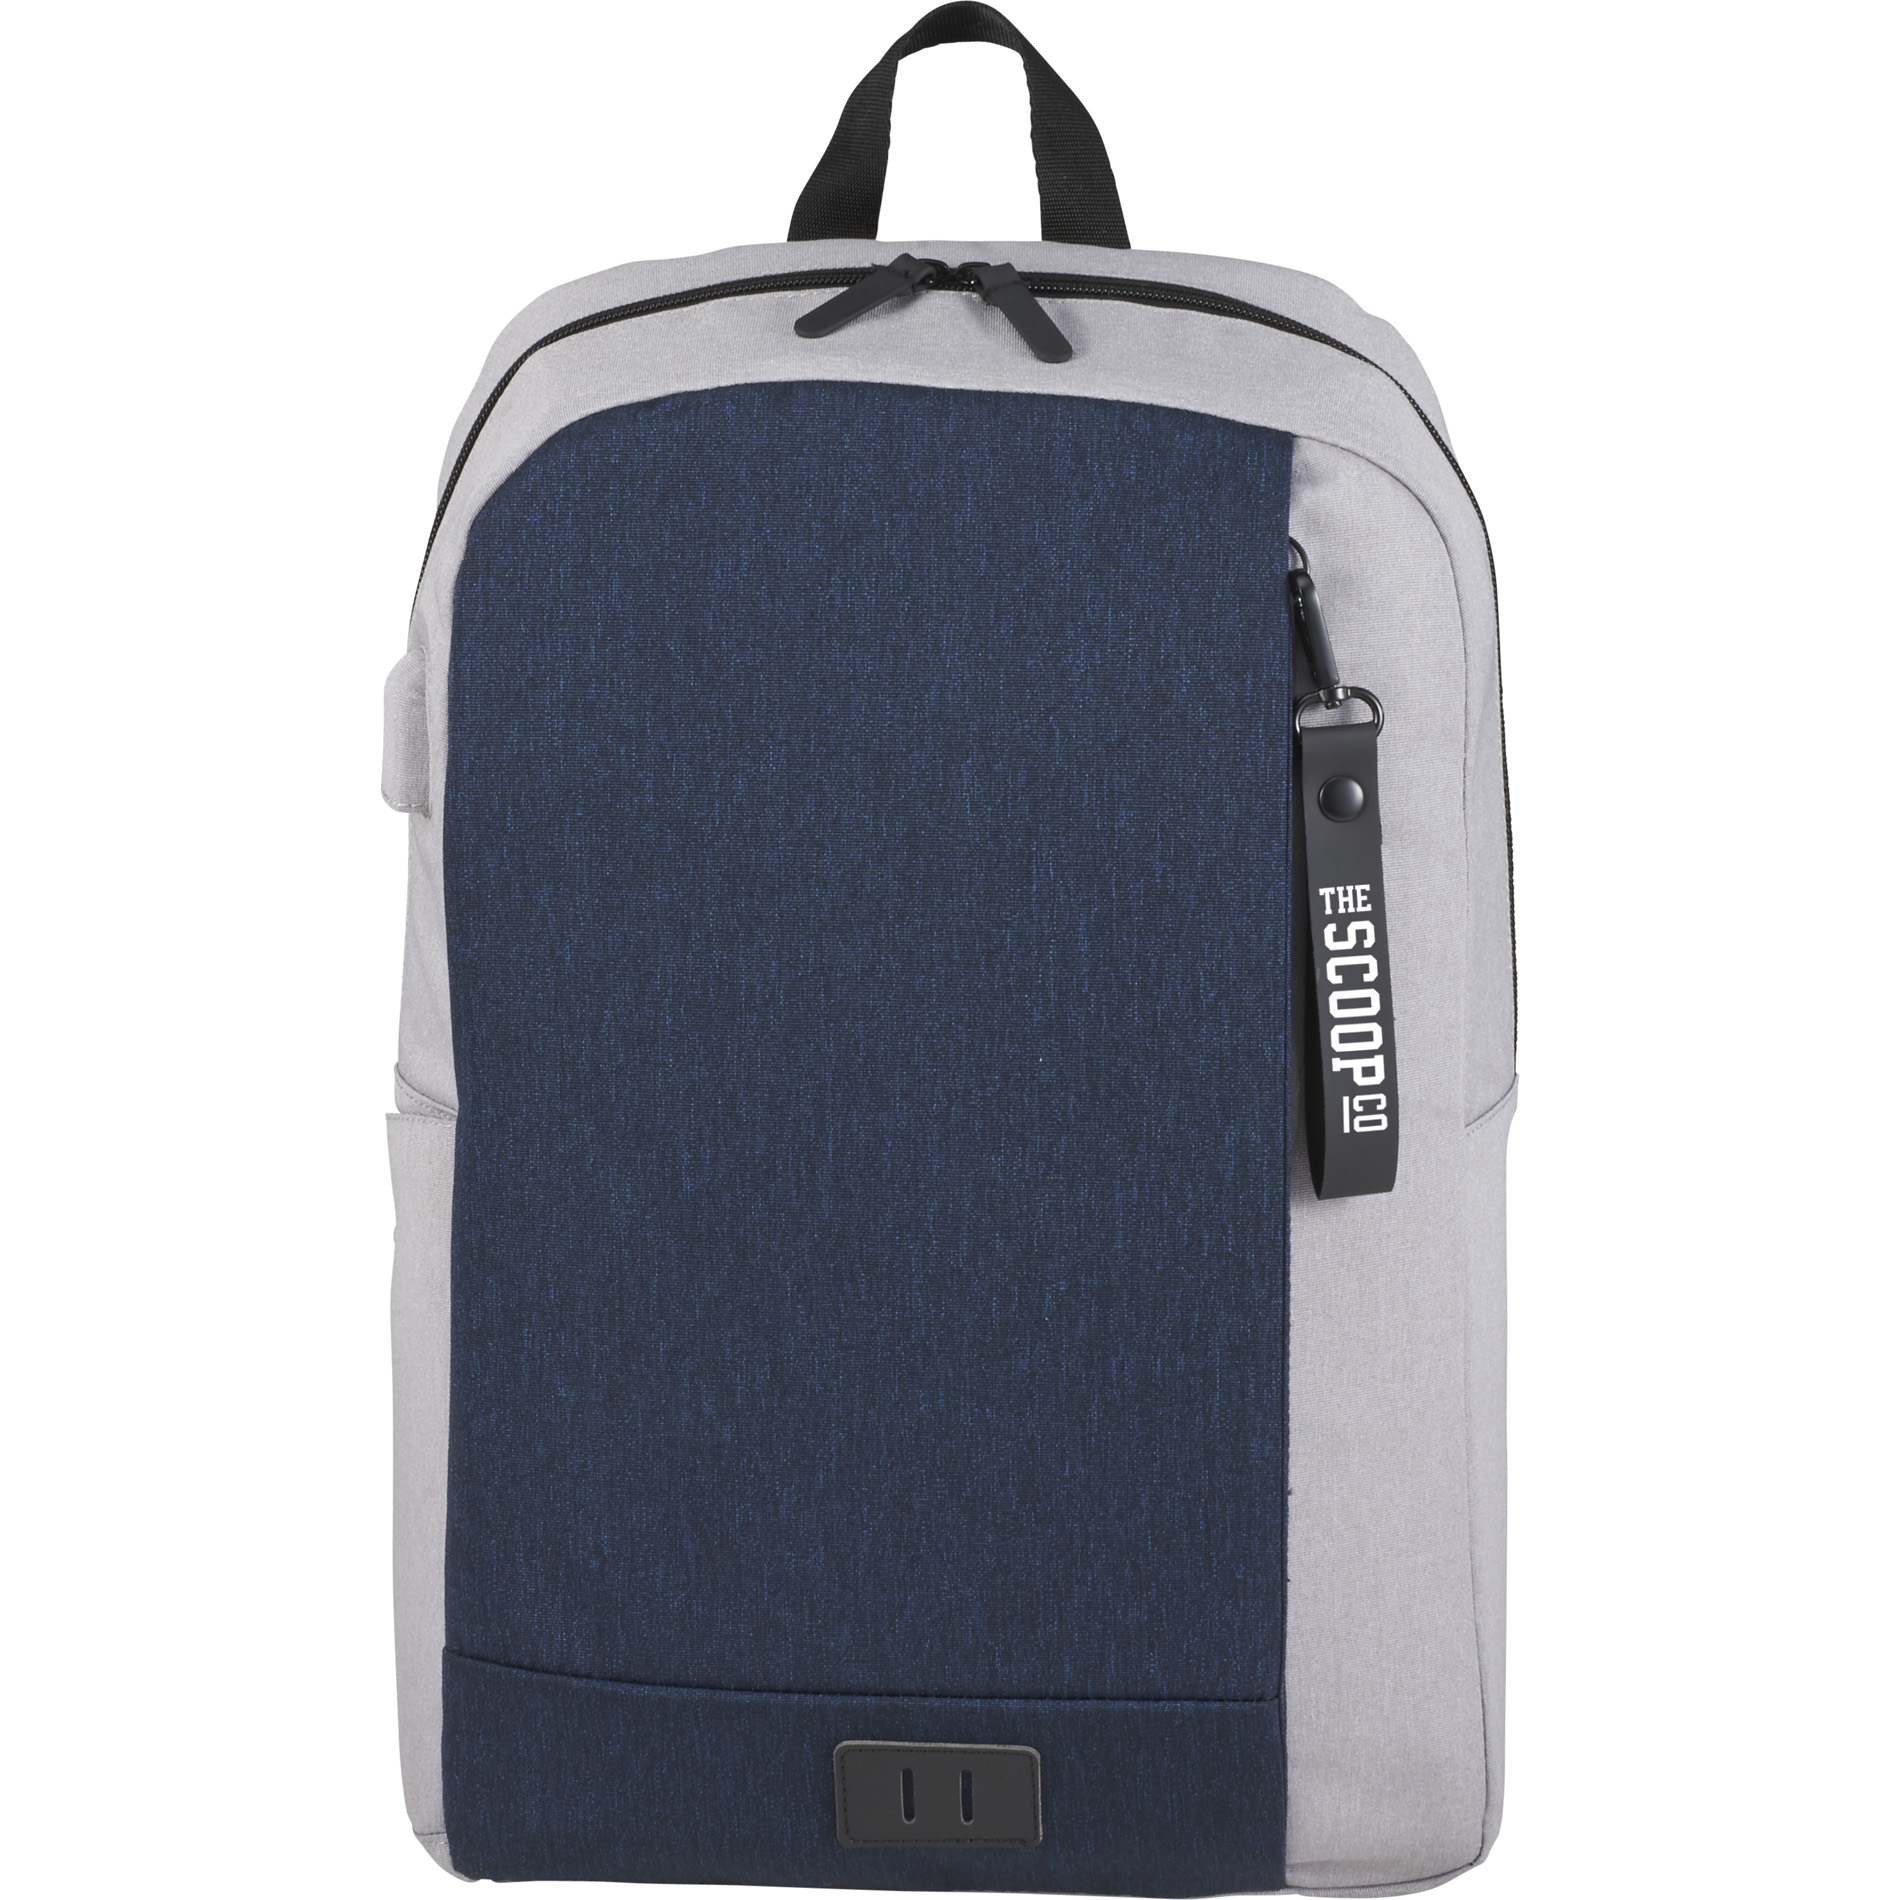 "LEEDS NBN 3950-01 - Whitby Slim 15"" Computer Backpack with USB Port"